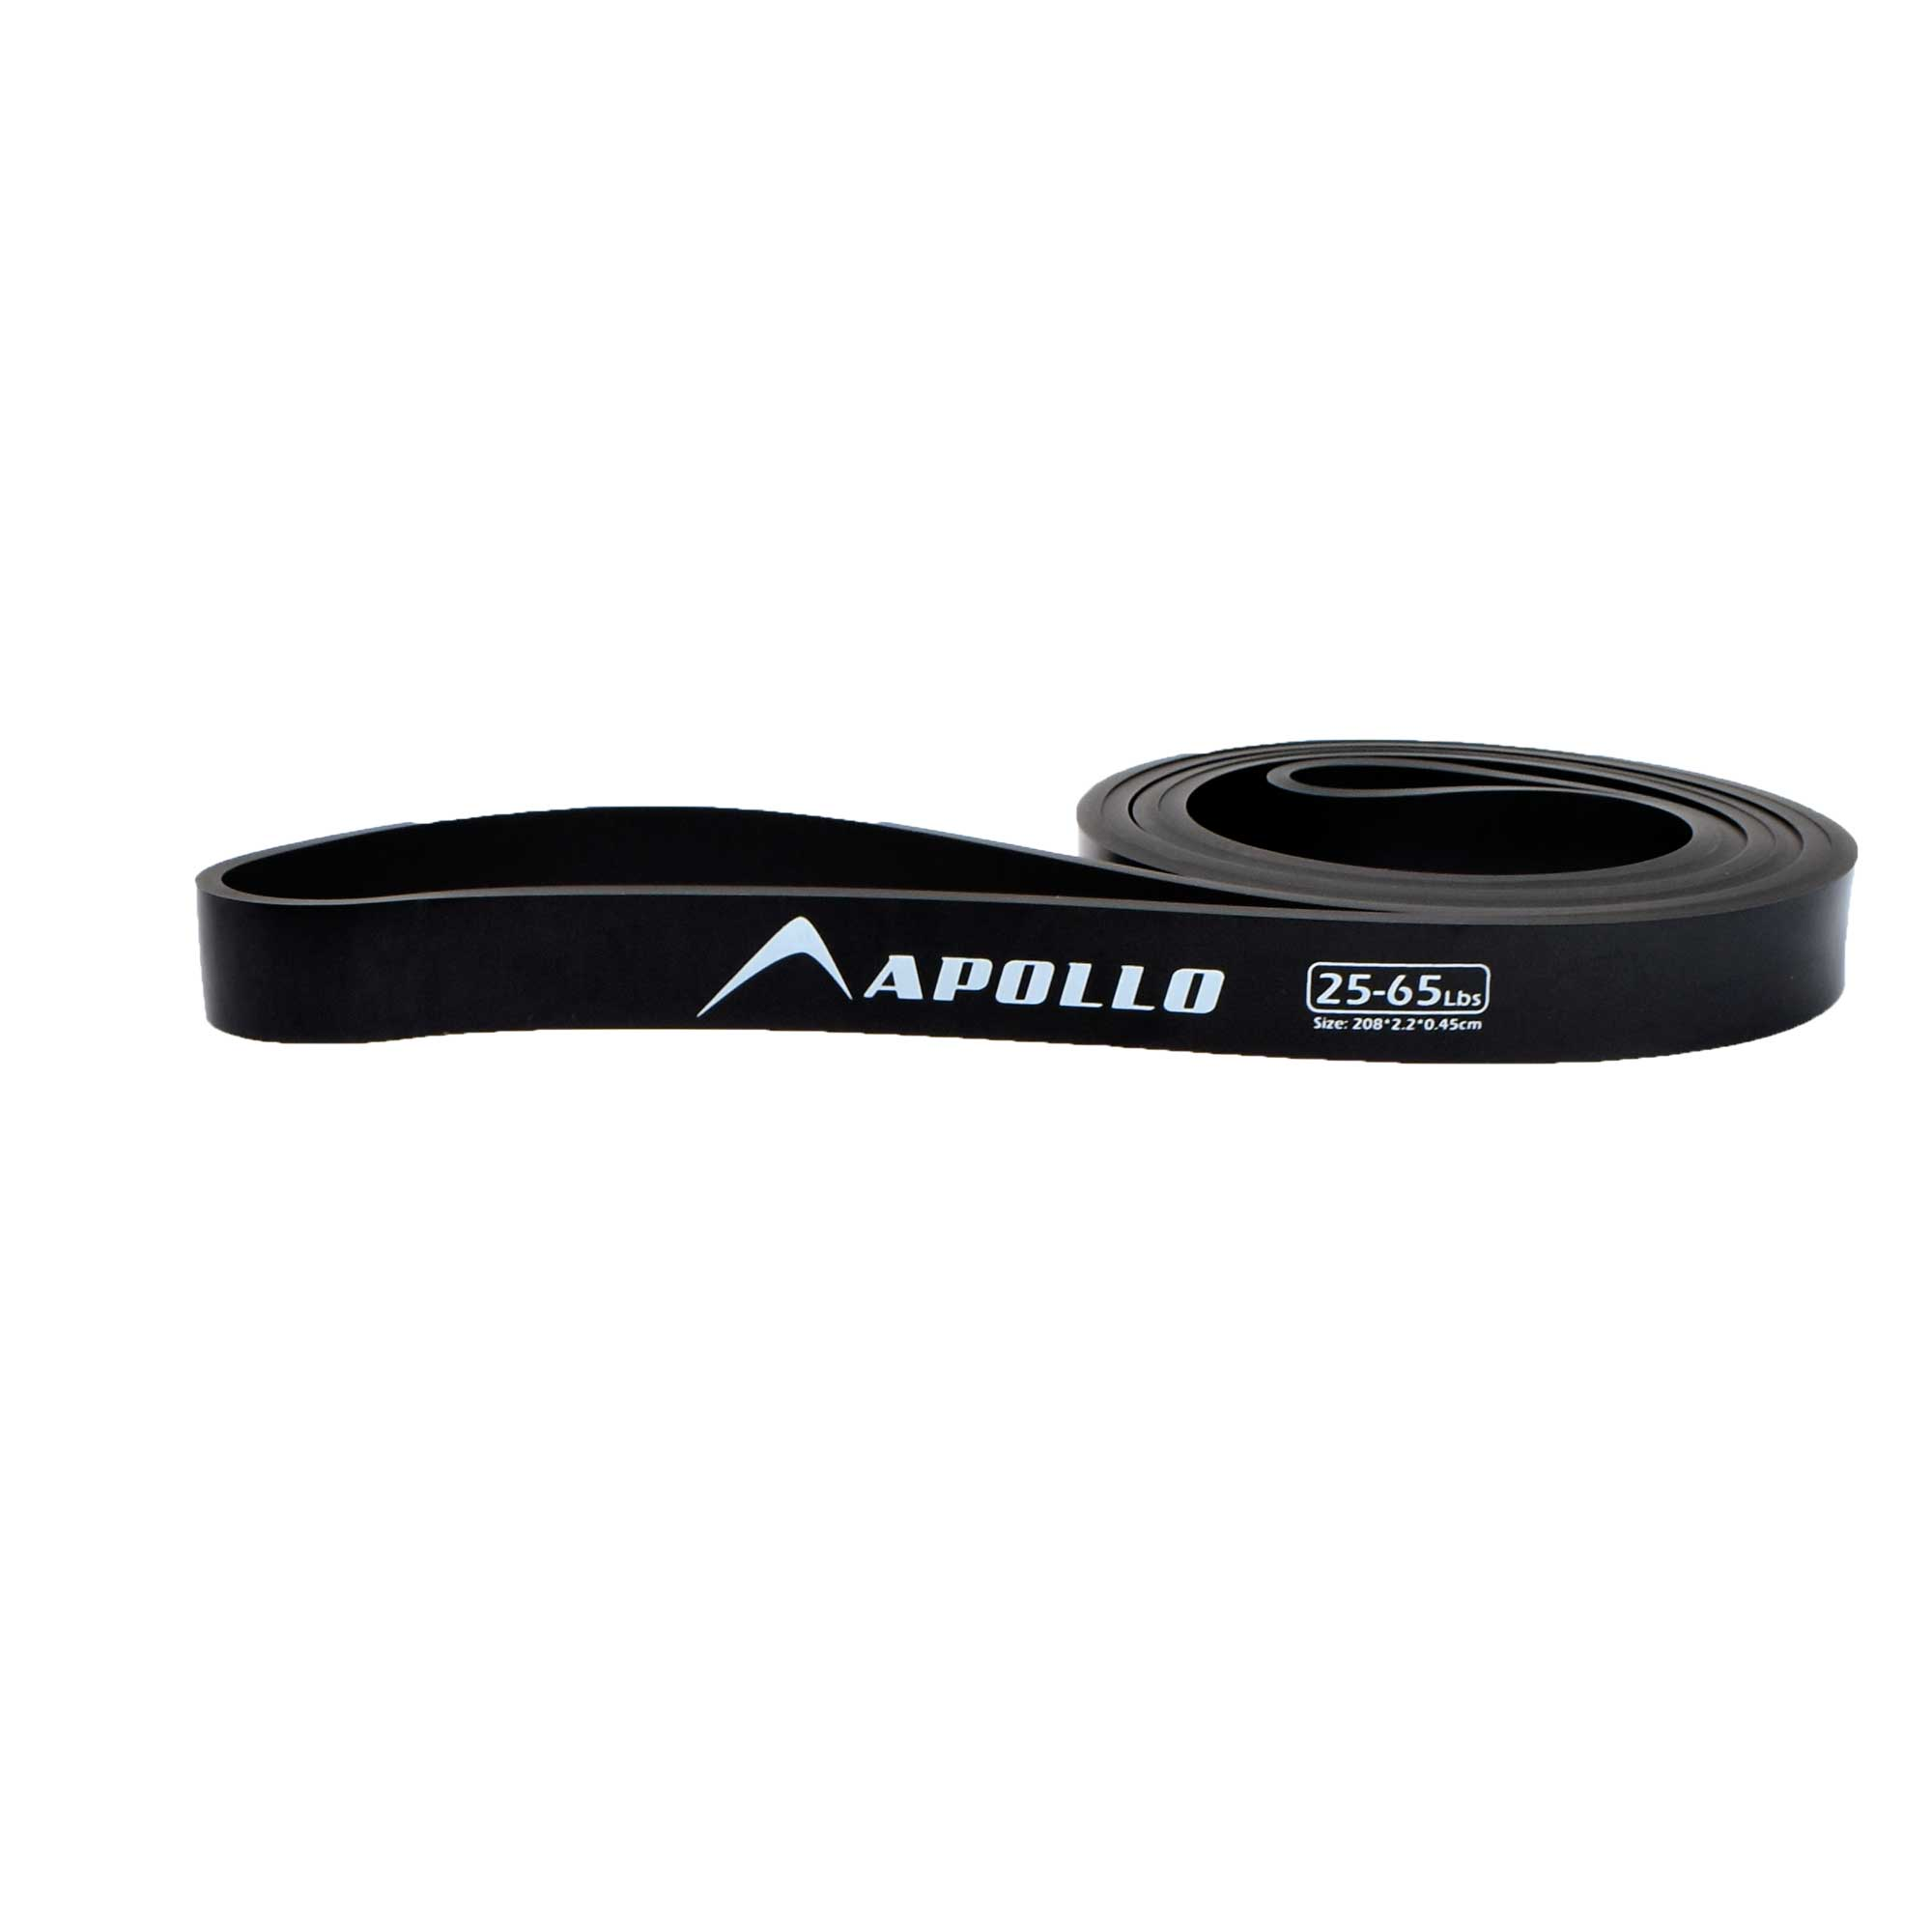 1PC LARGE HEAVY LOOP BAND GYM TRAINING RESISTANCE LOOPS APOLLO FALB23-22